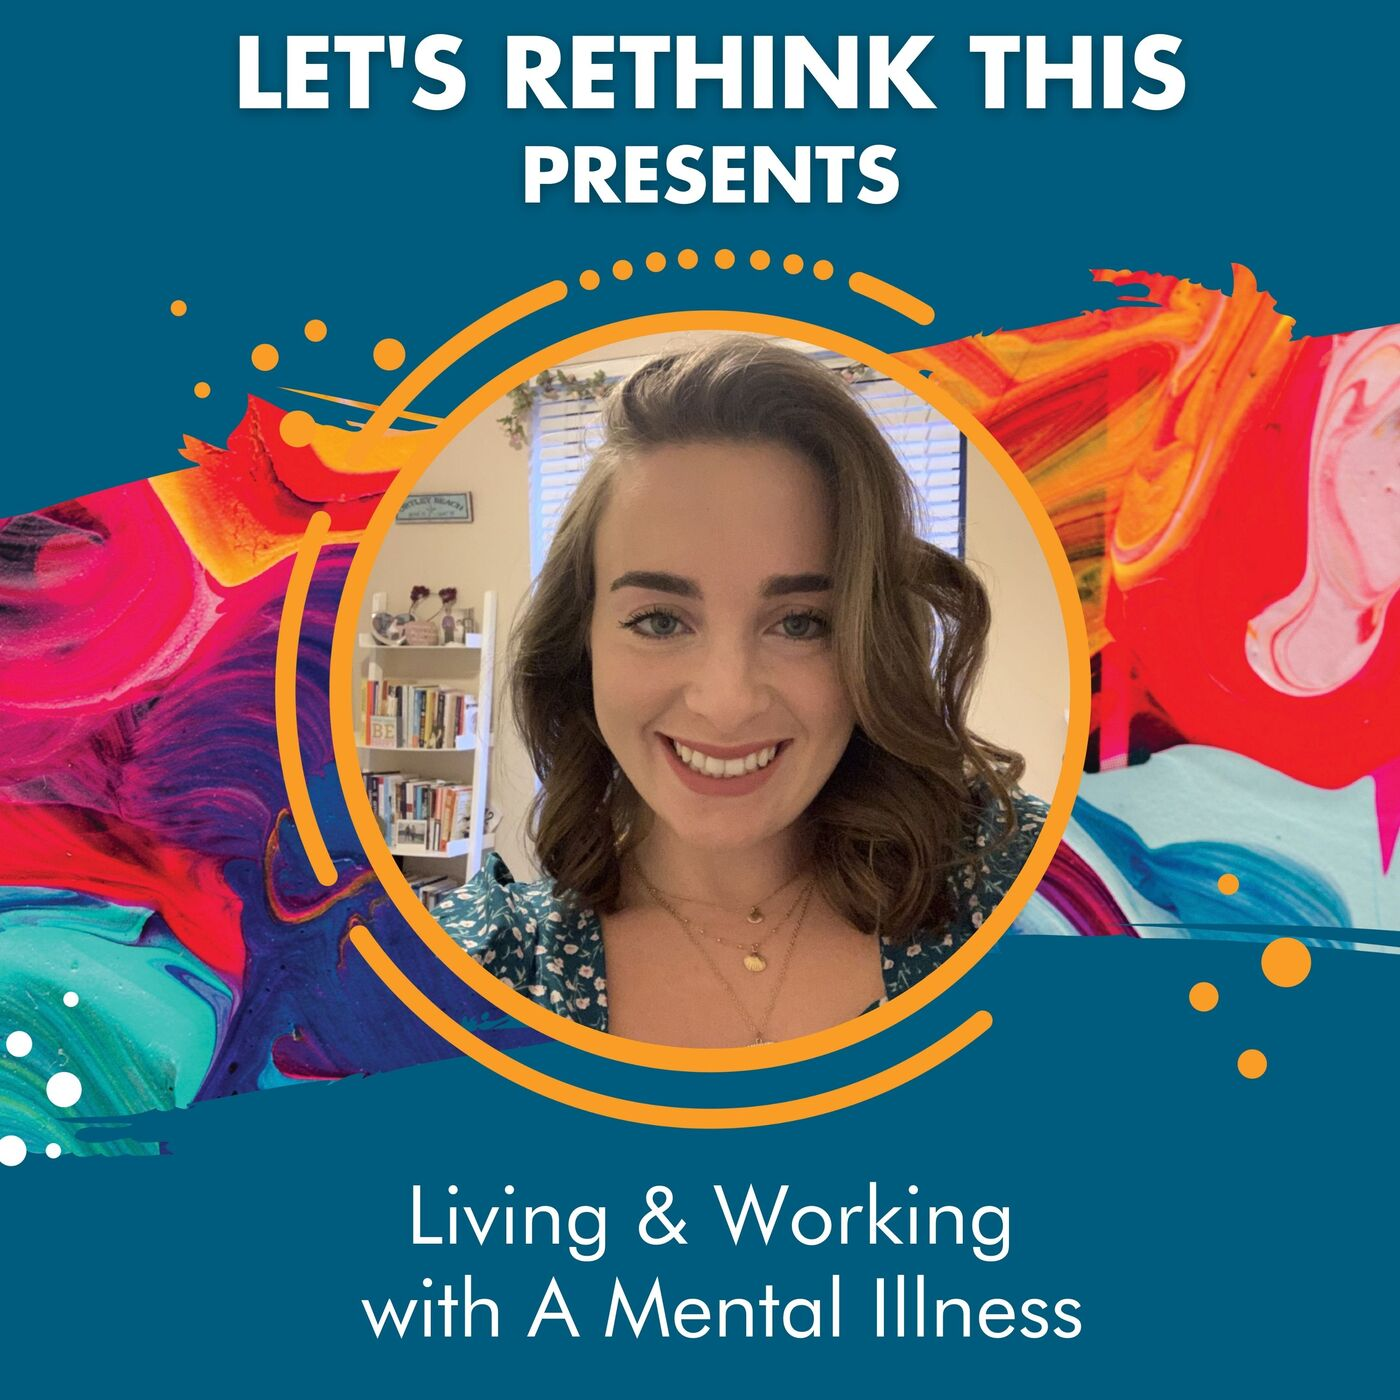 Living & Working with A Mental Illness